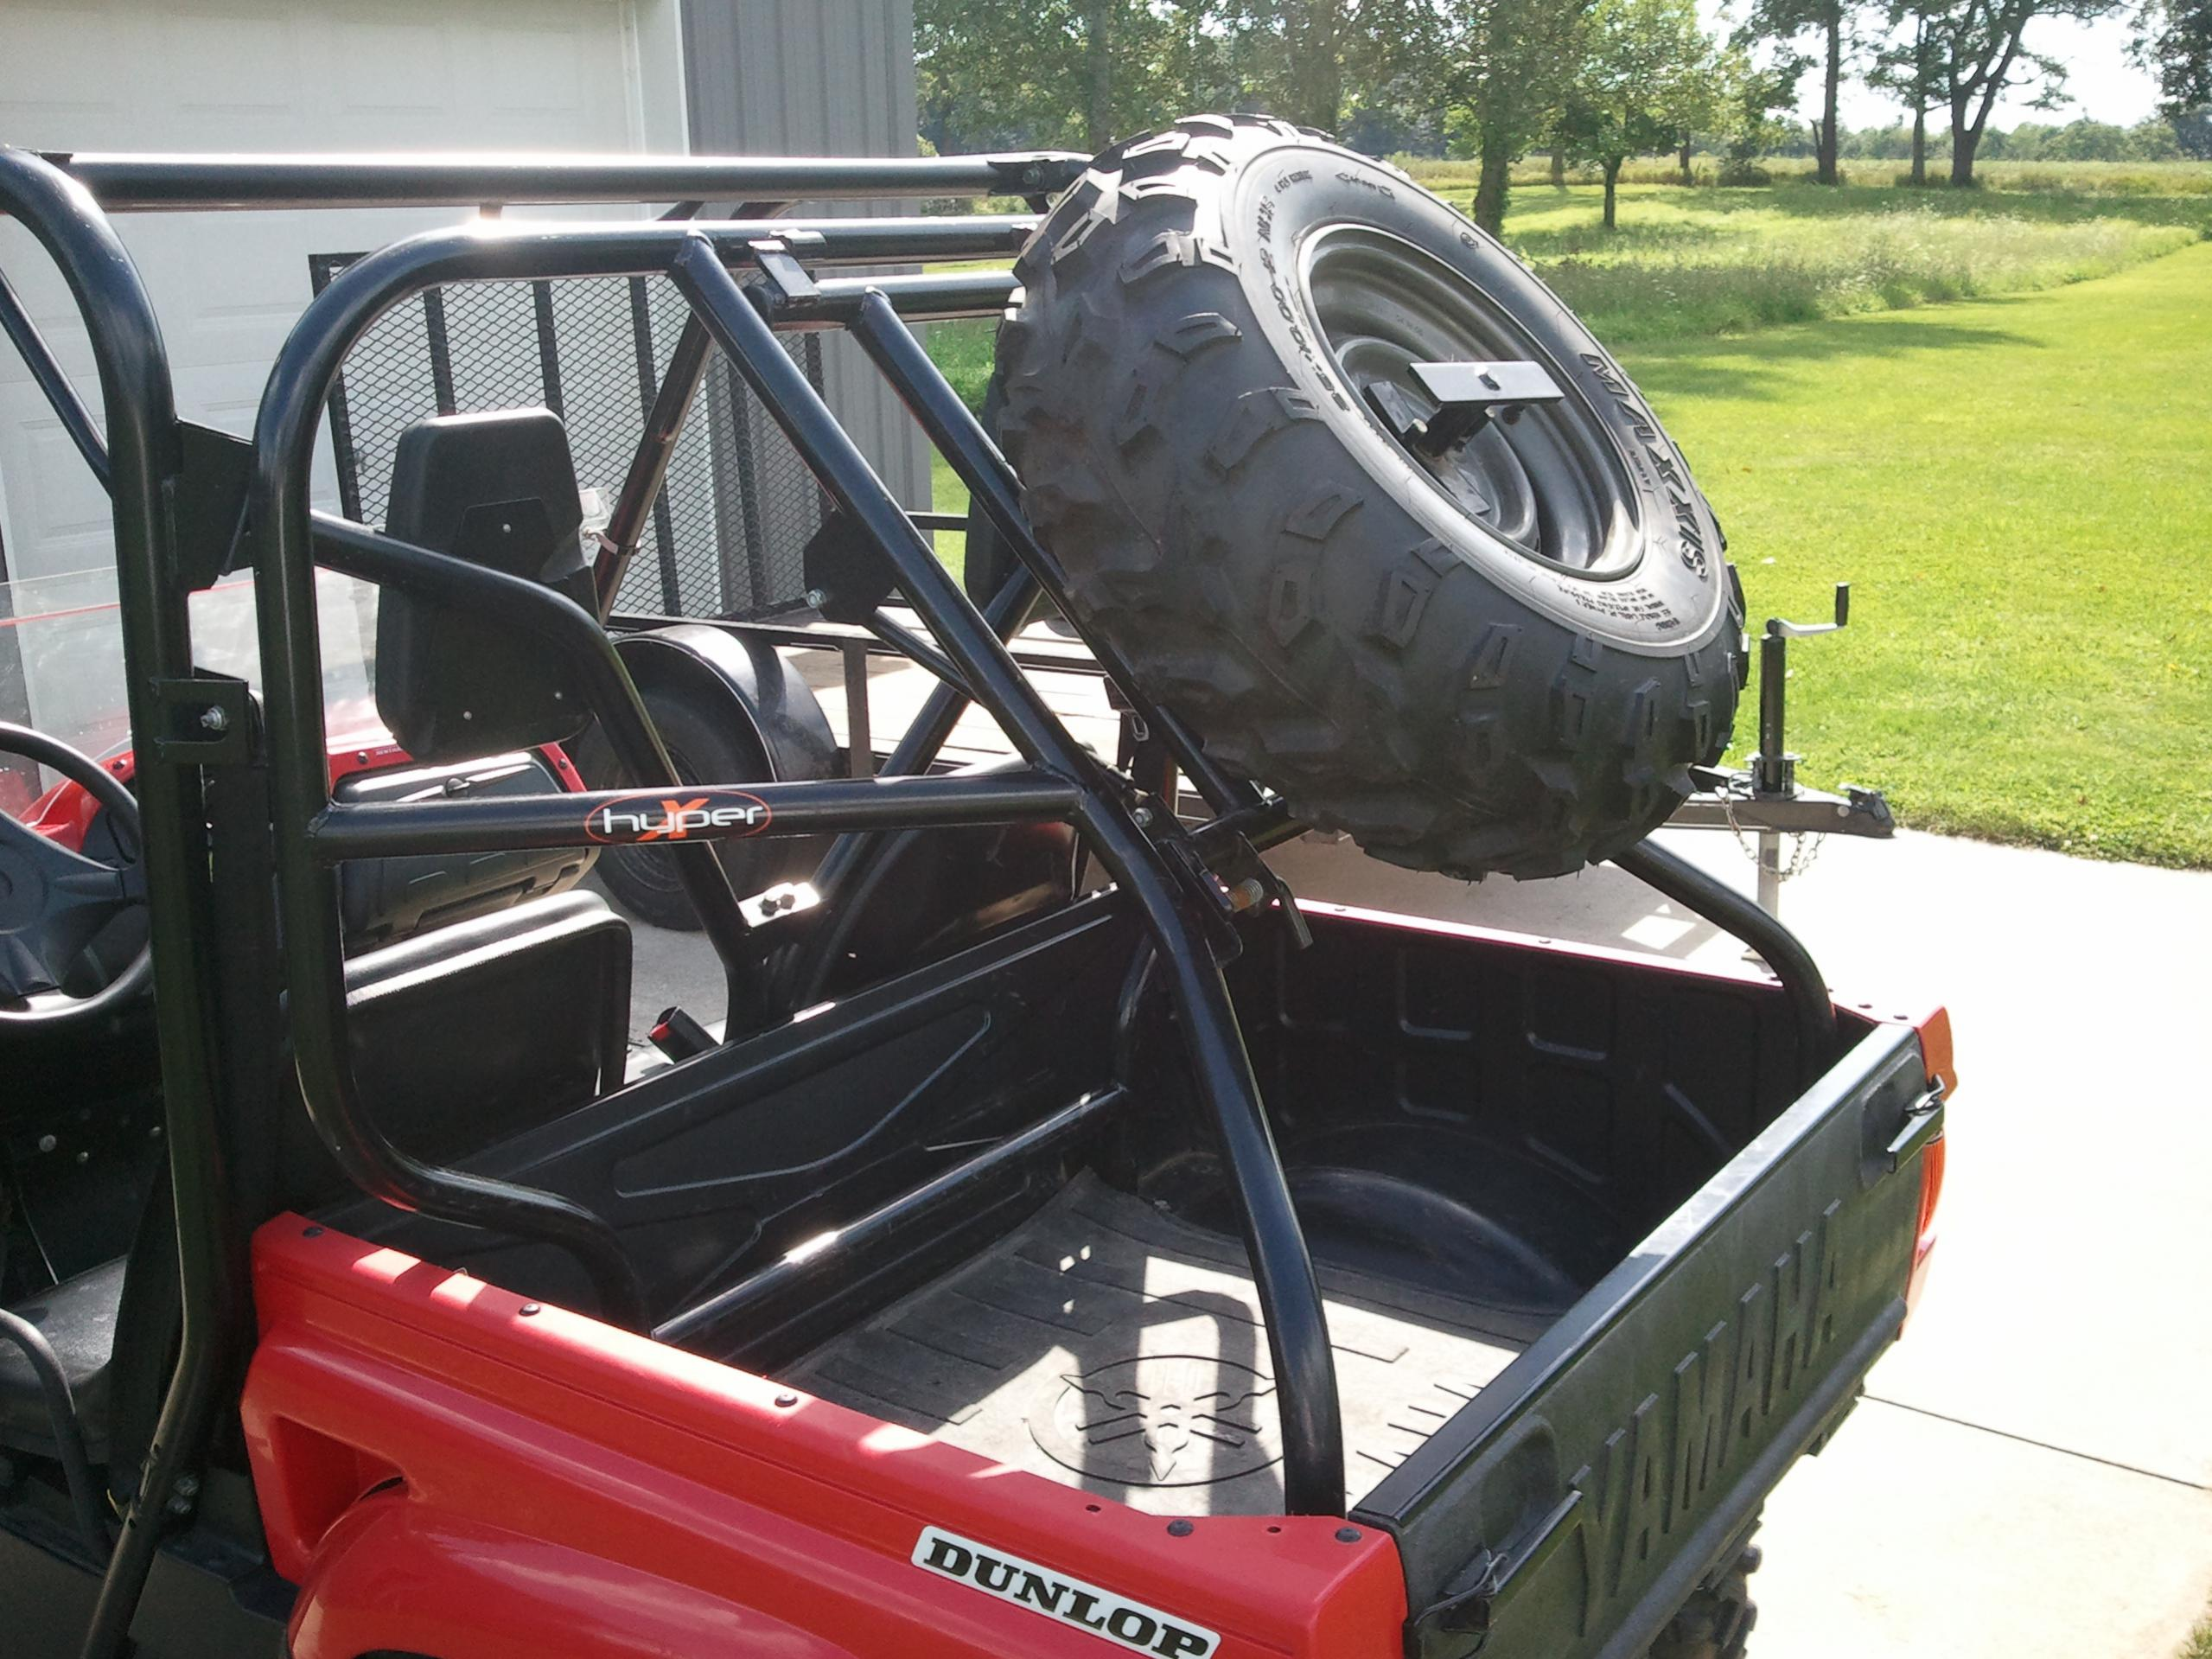 Prerunner For Sale >> PreRunner Spare Tire Carrier For Sale MI - Yamaha Rhino Forum - Rhino Forums.net